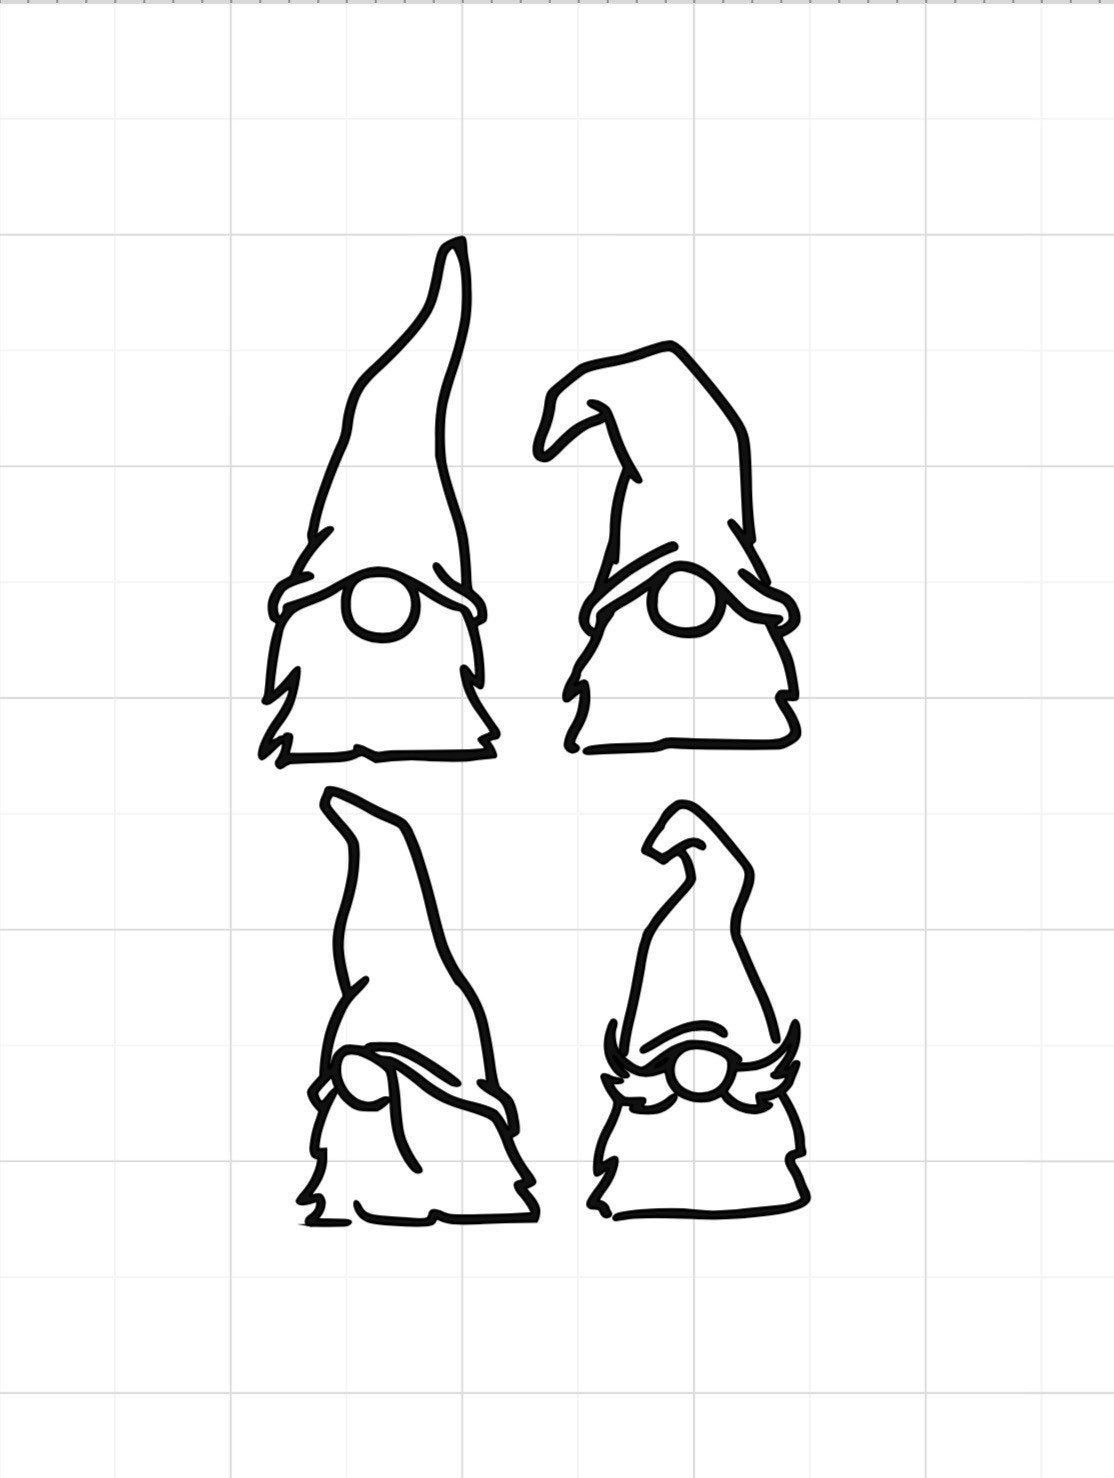 Gnome Svg Gnomes Svg Gnome Gnomes Etsy In 2021 Gnomes Gnome Patterns Gnomes Crafts